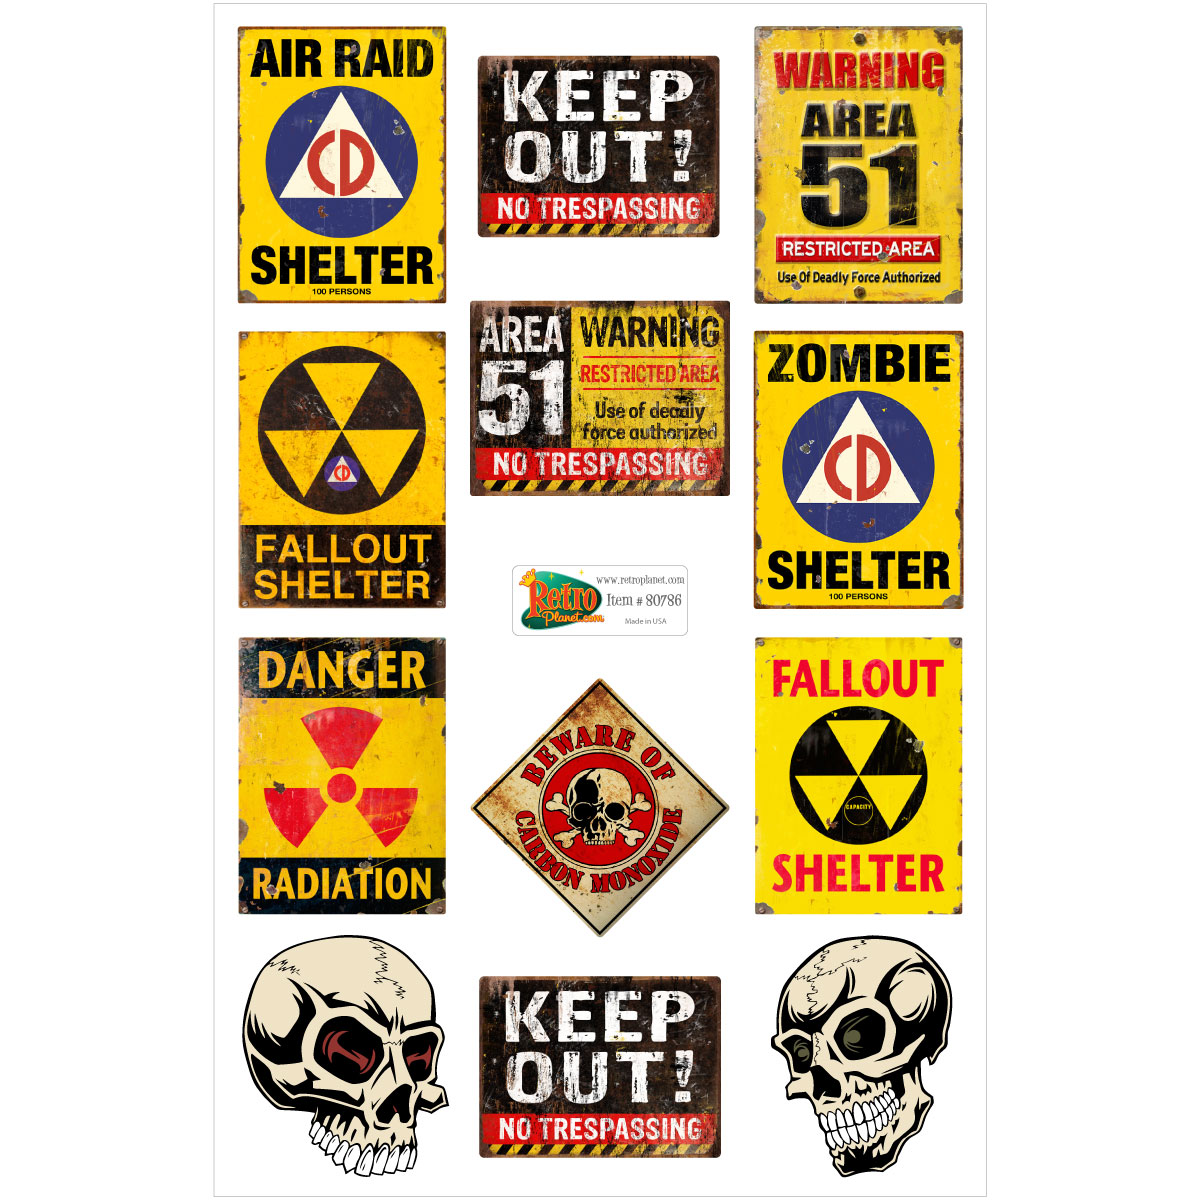 Area 51 Fallout Shelter Warning Signs Vinyl Sticker Set Of